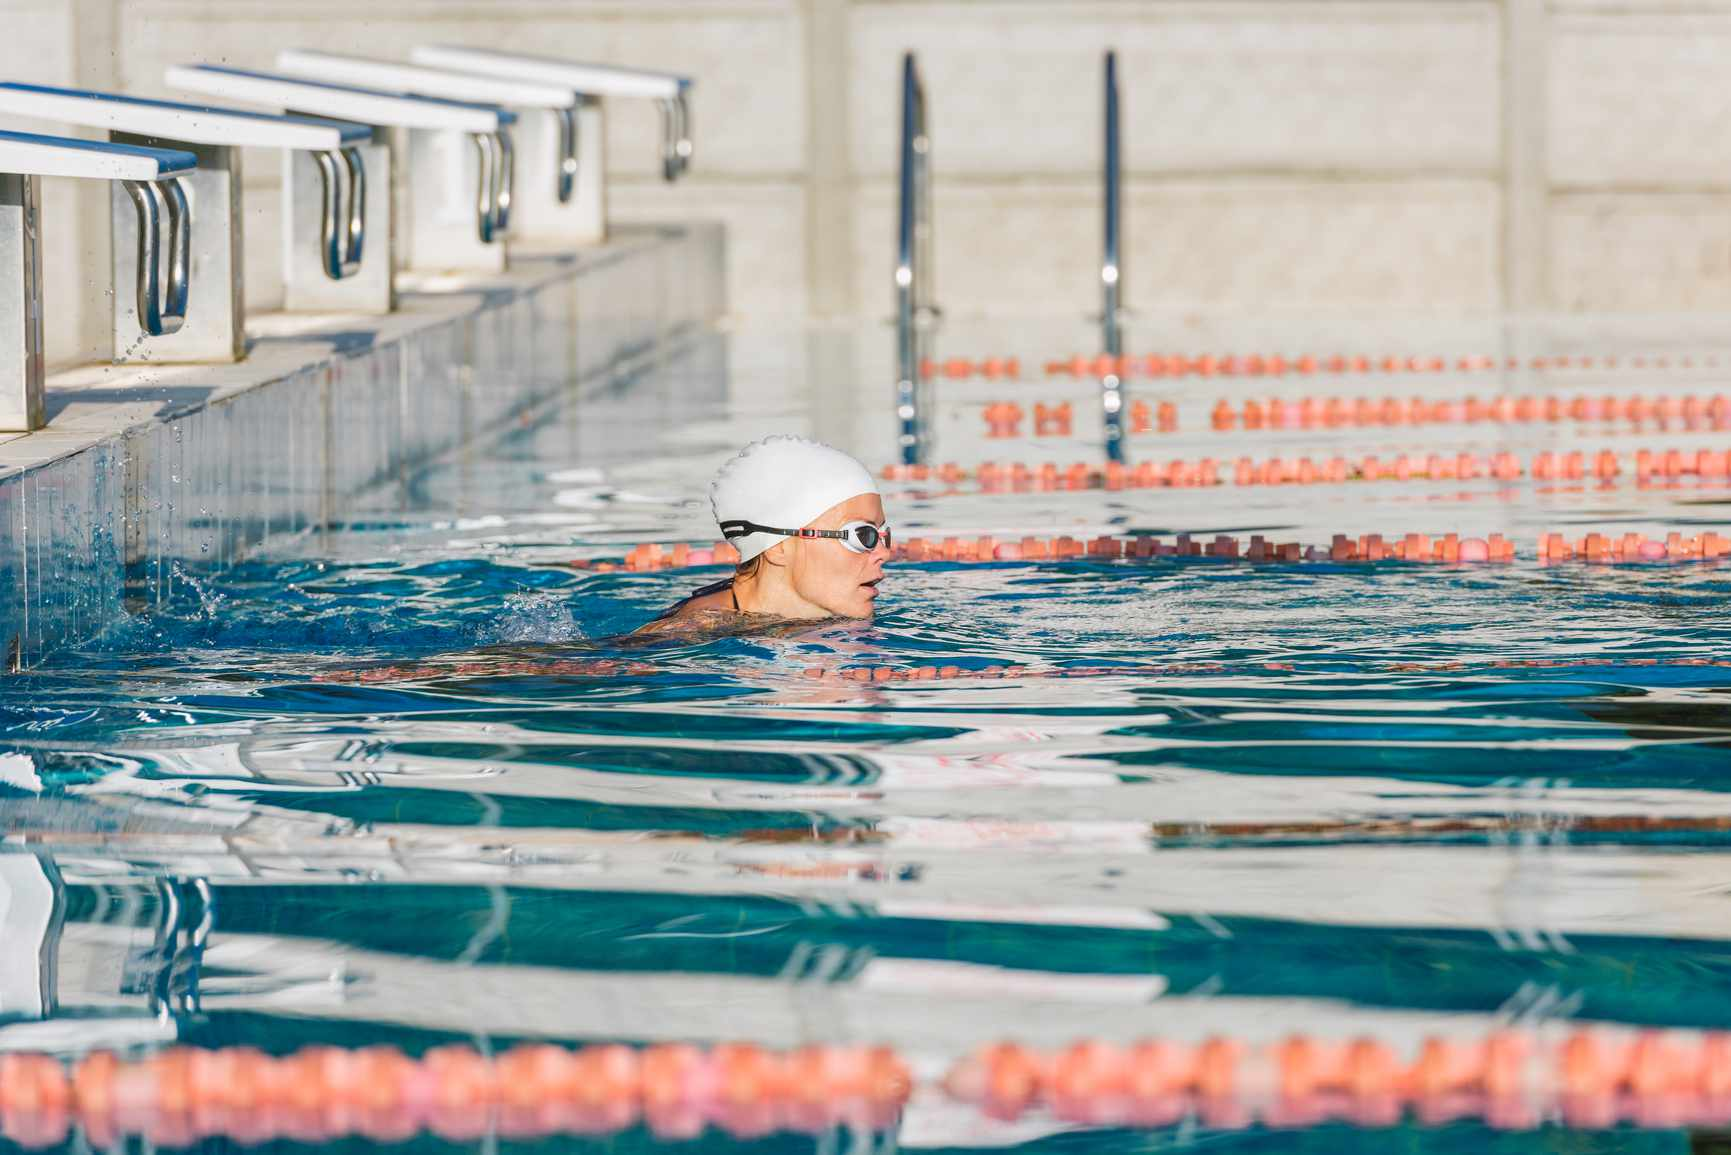 a professional swimmer in competition